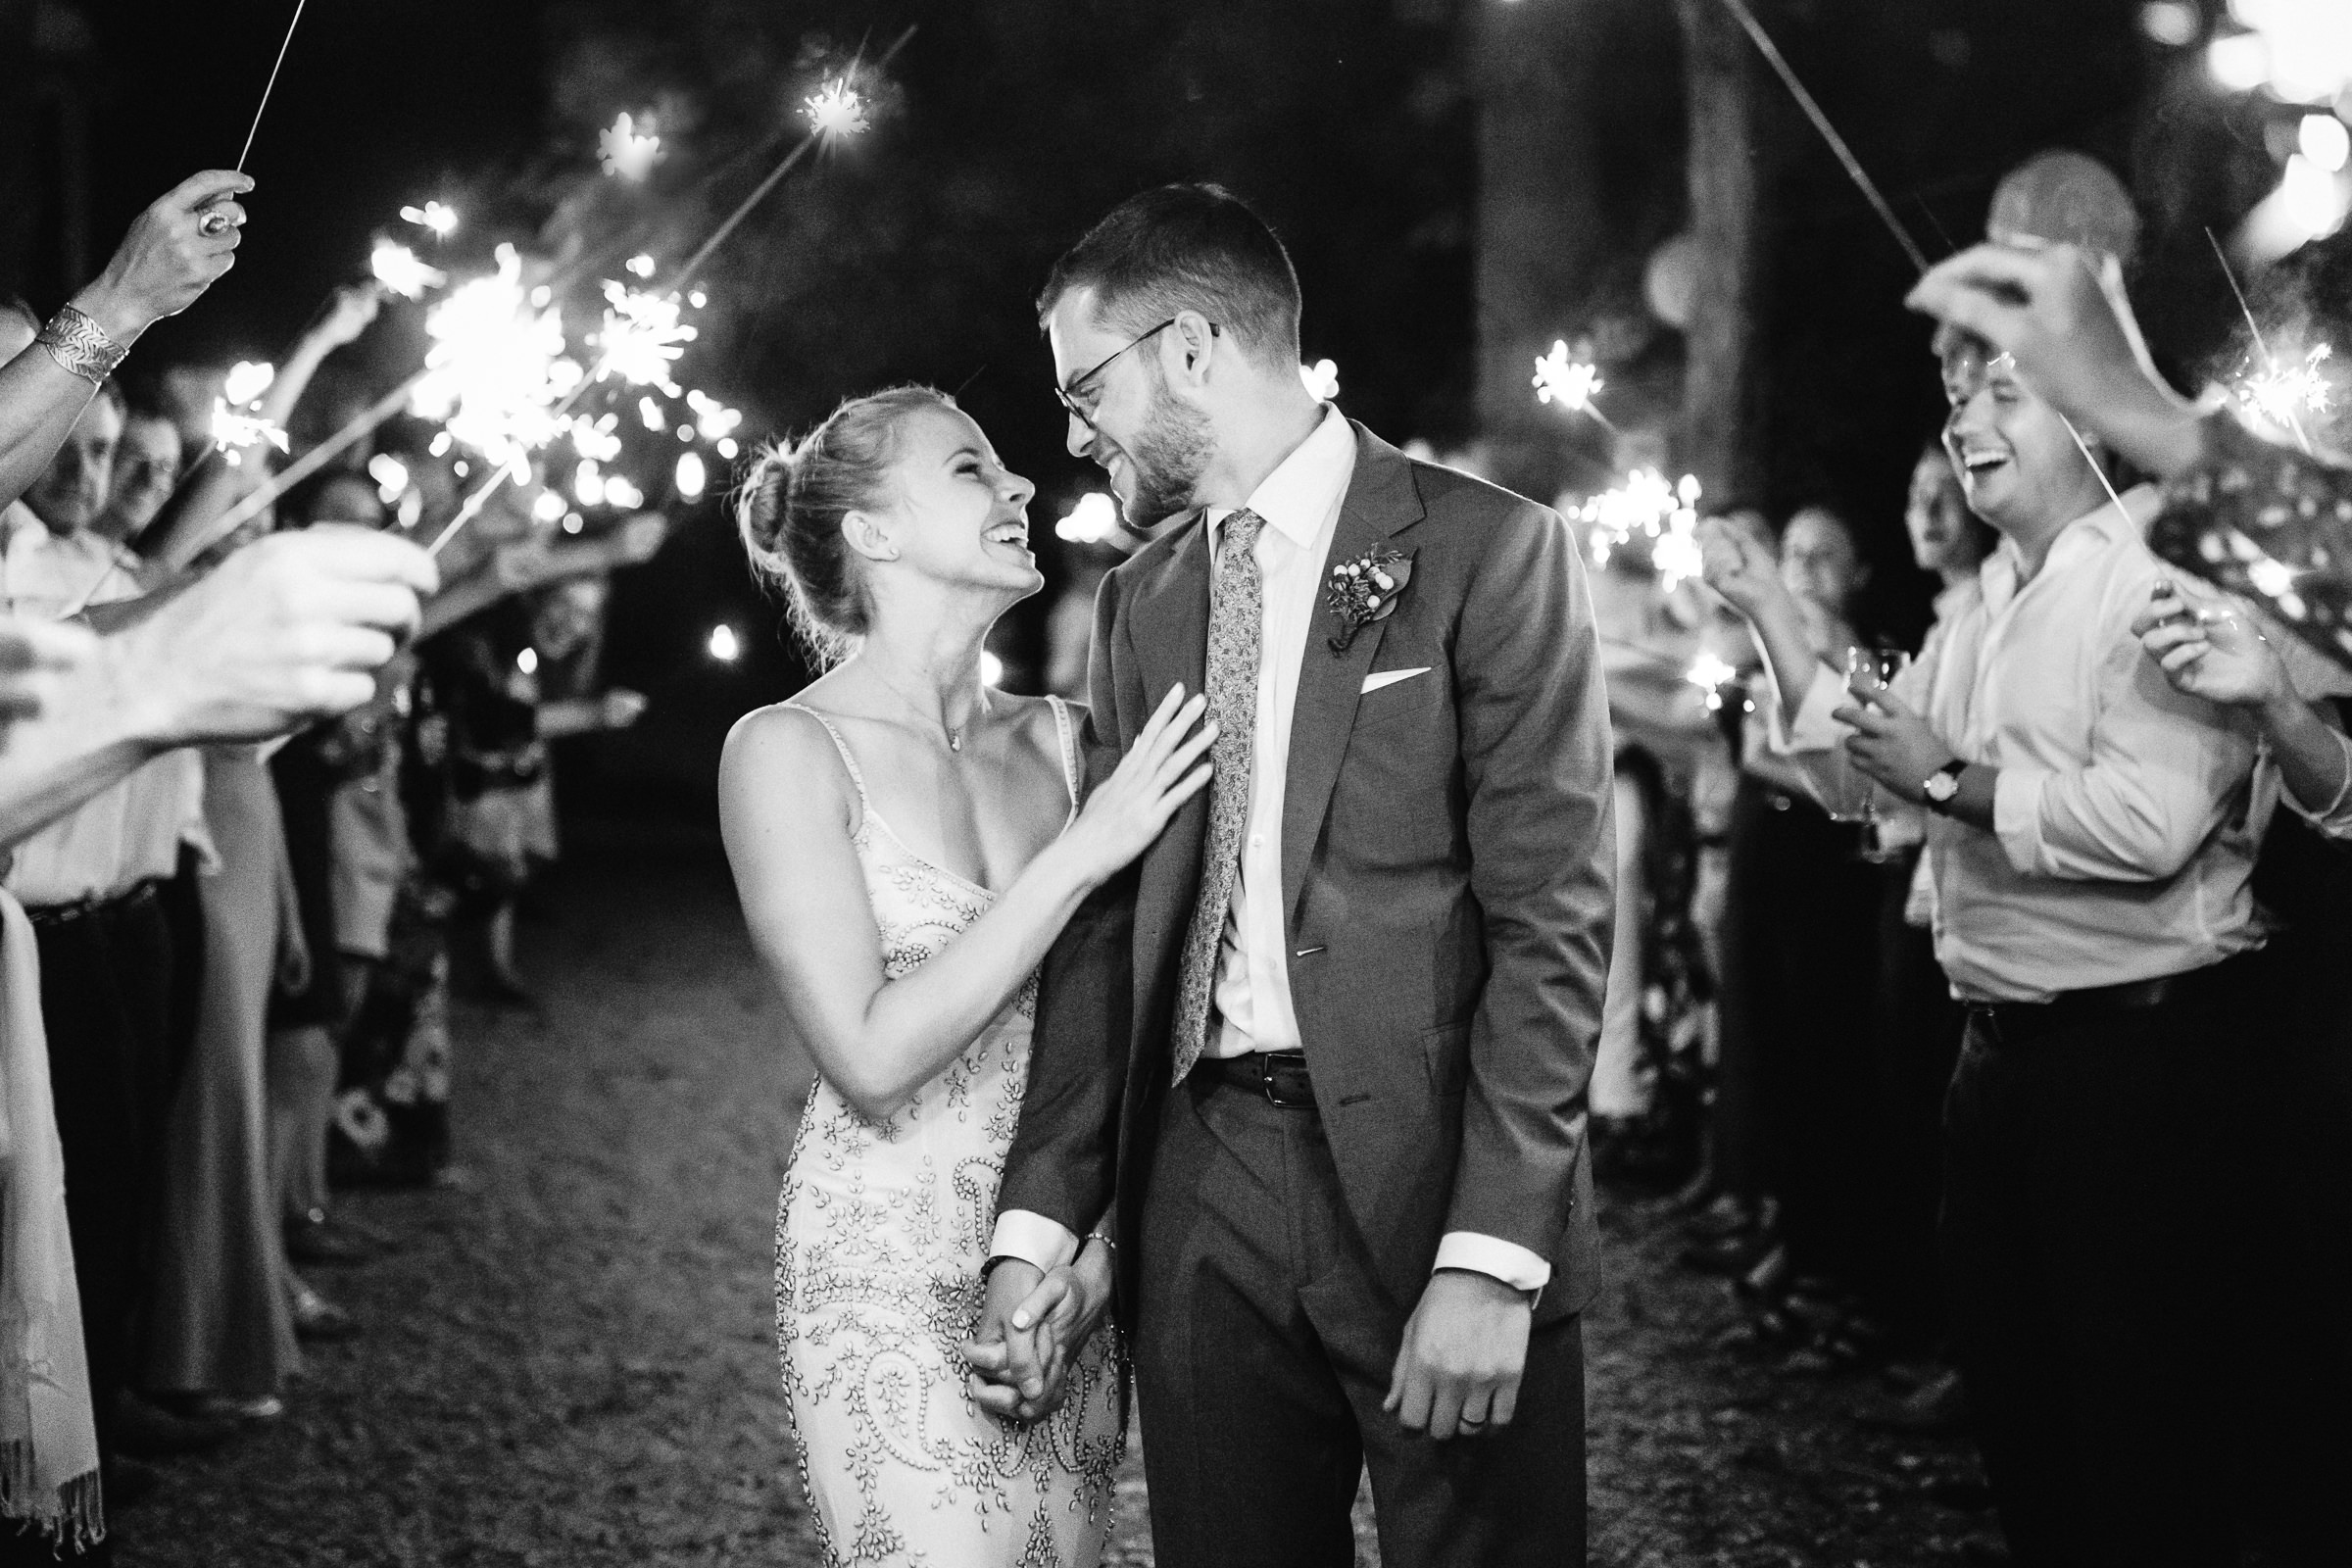 Happy couple moment against sparkler exit - photo by Xiaoqi Li Photography